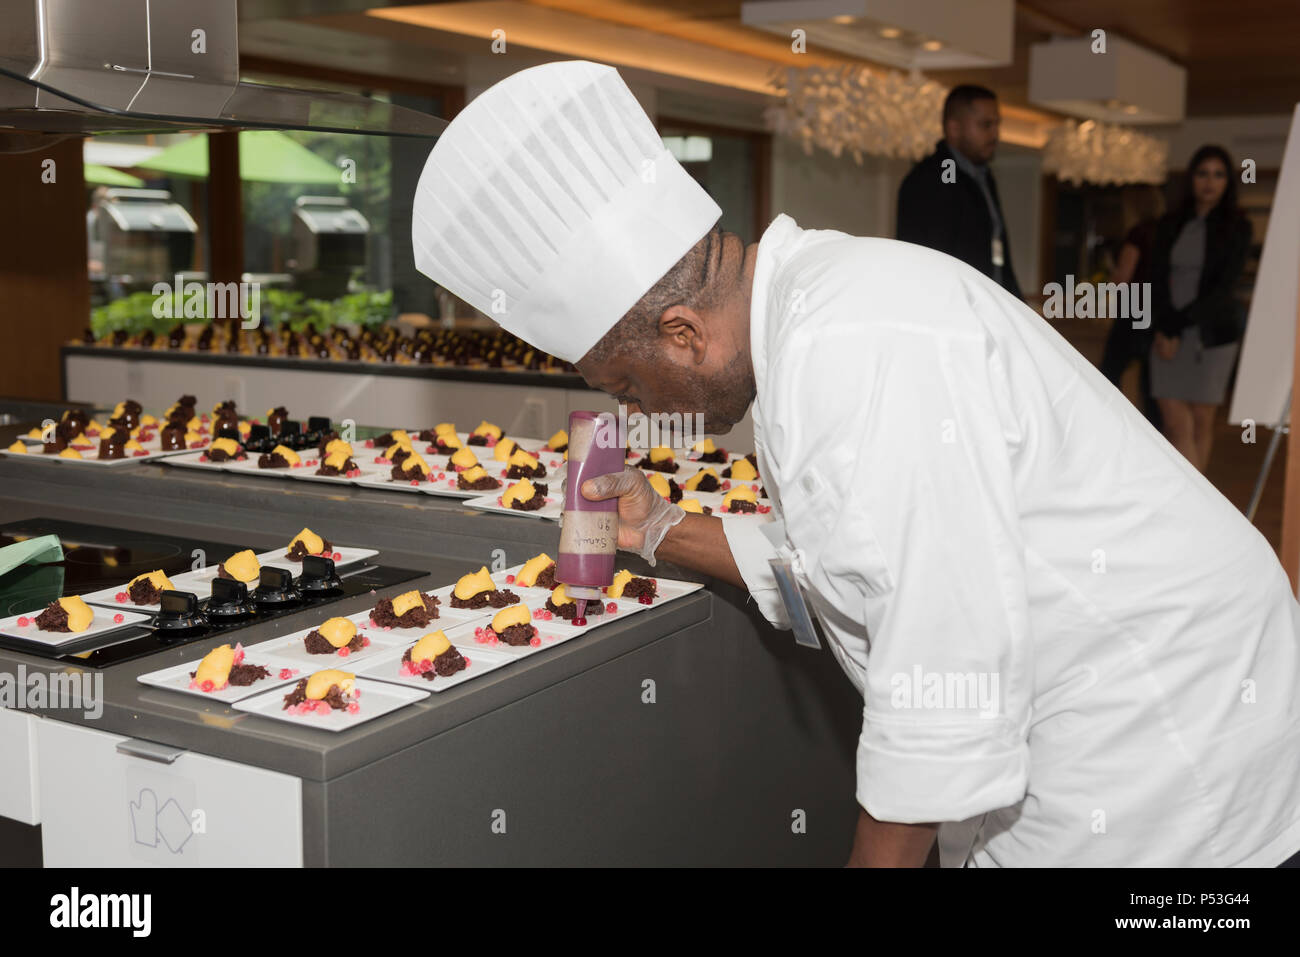 Pastry Chef adding the final touches to his desserts. - Stock Image